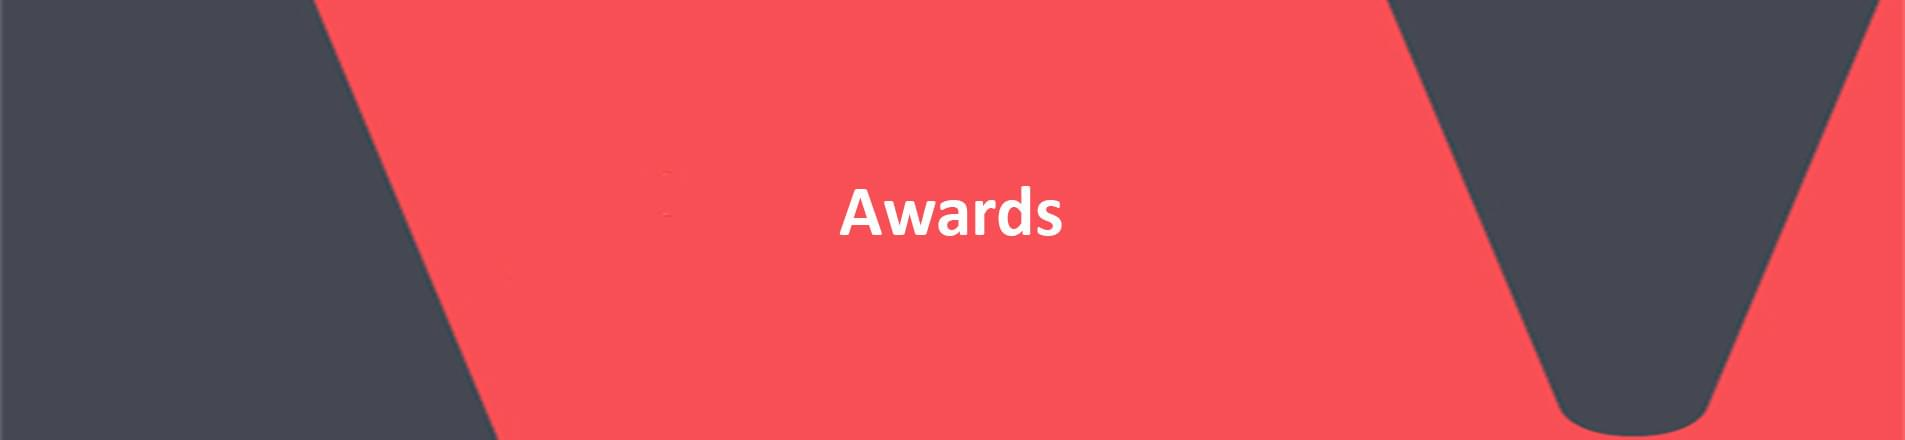 the word Awards on red VERCIDA branded background